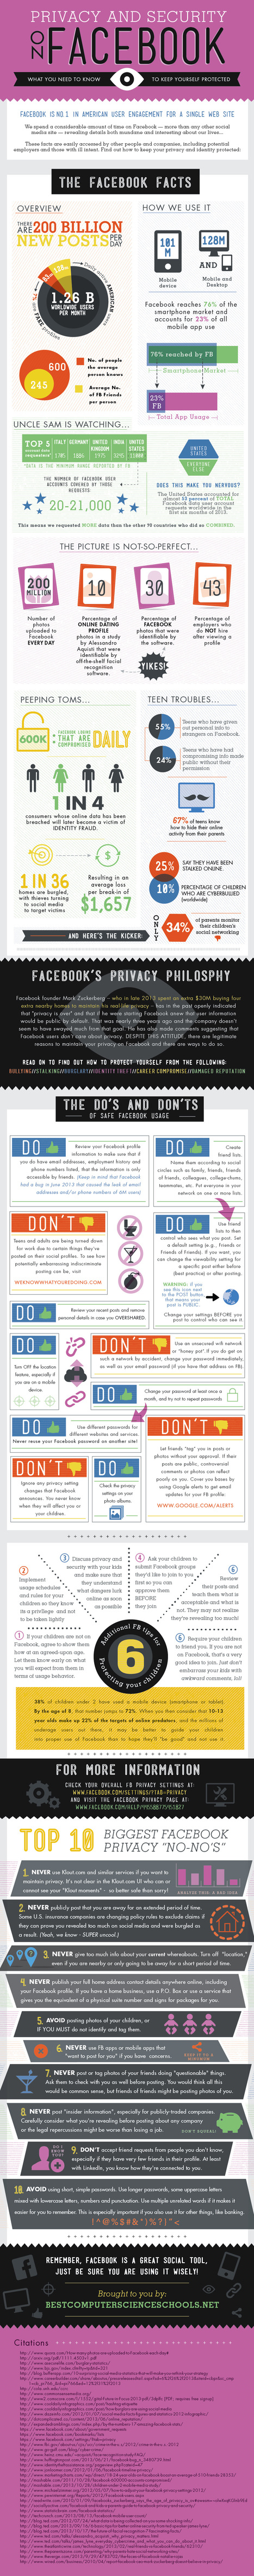 Infographic:  Everything you need to know about privacy on Facebook | Online tips & social media nieuws | Scoop.it